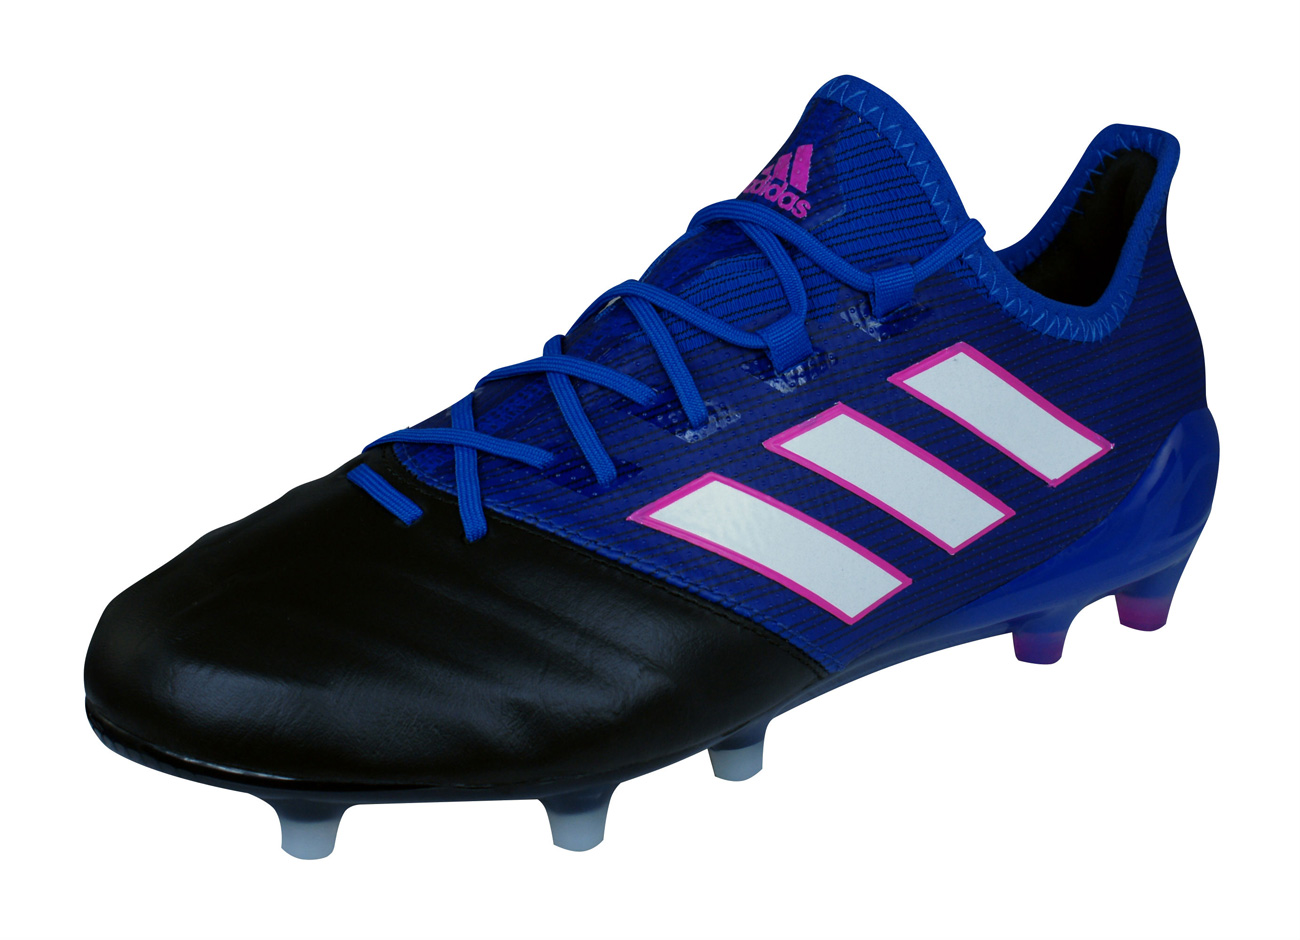 Adidas Ace 17 1 Leather Fg Mens Firm Ground Football Boots